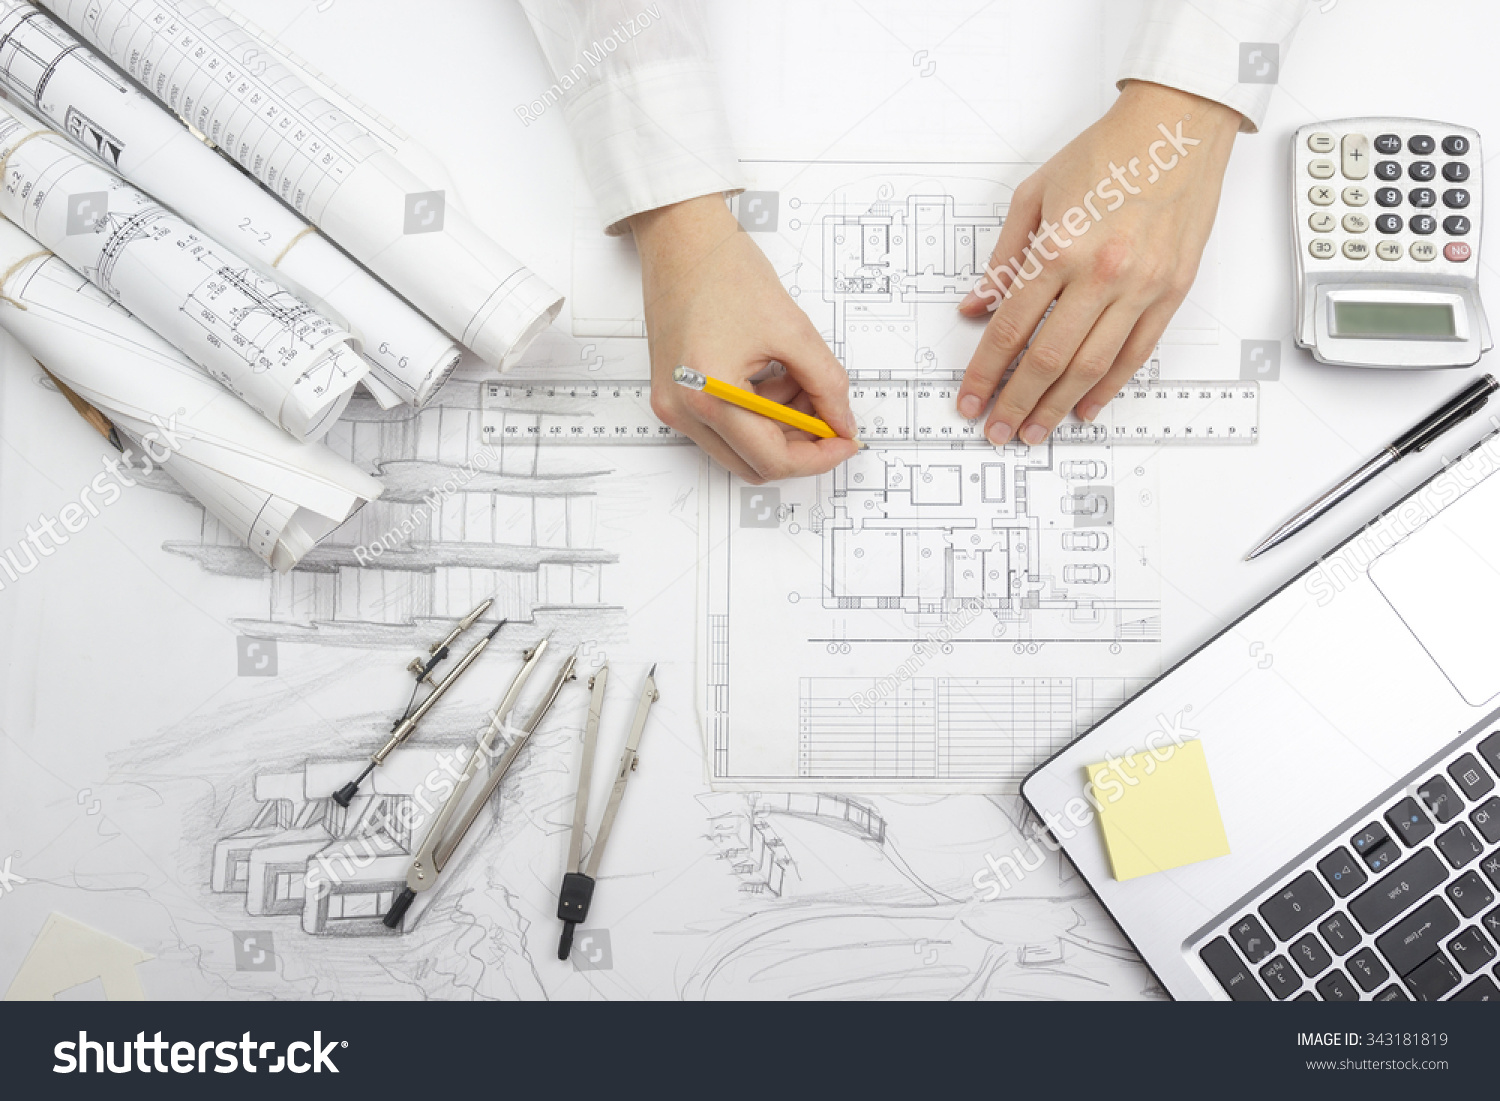 Architect working on blueprint architects workplace stock for Construction architect